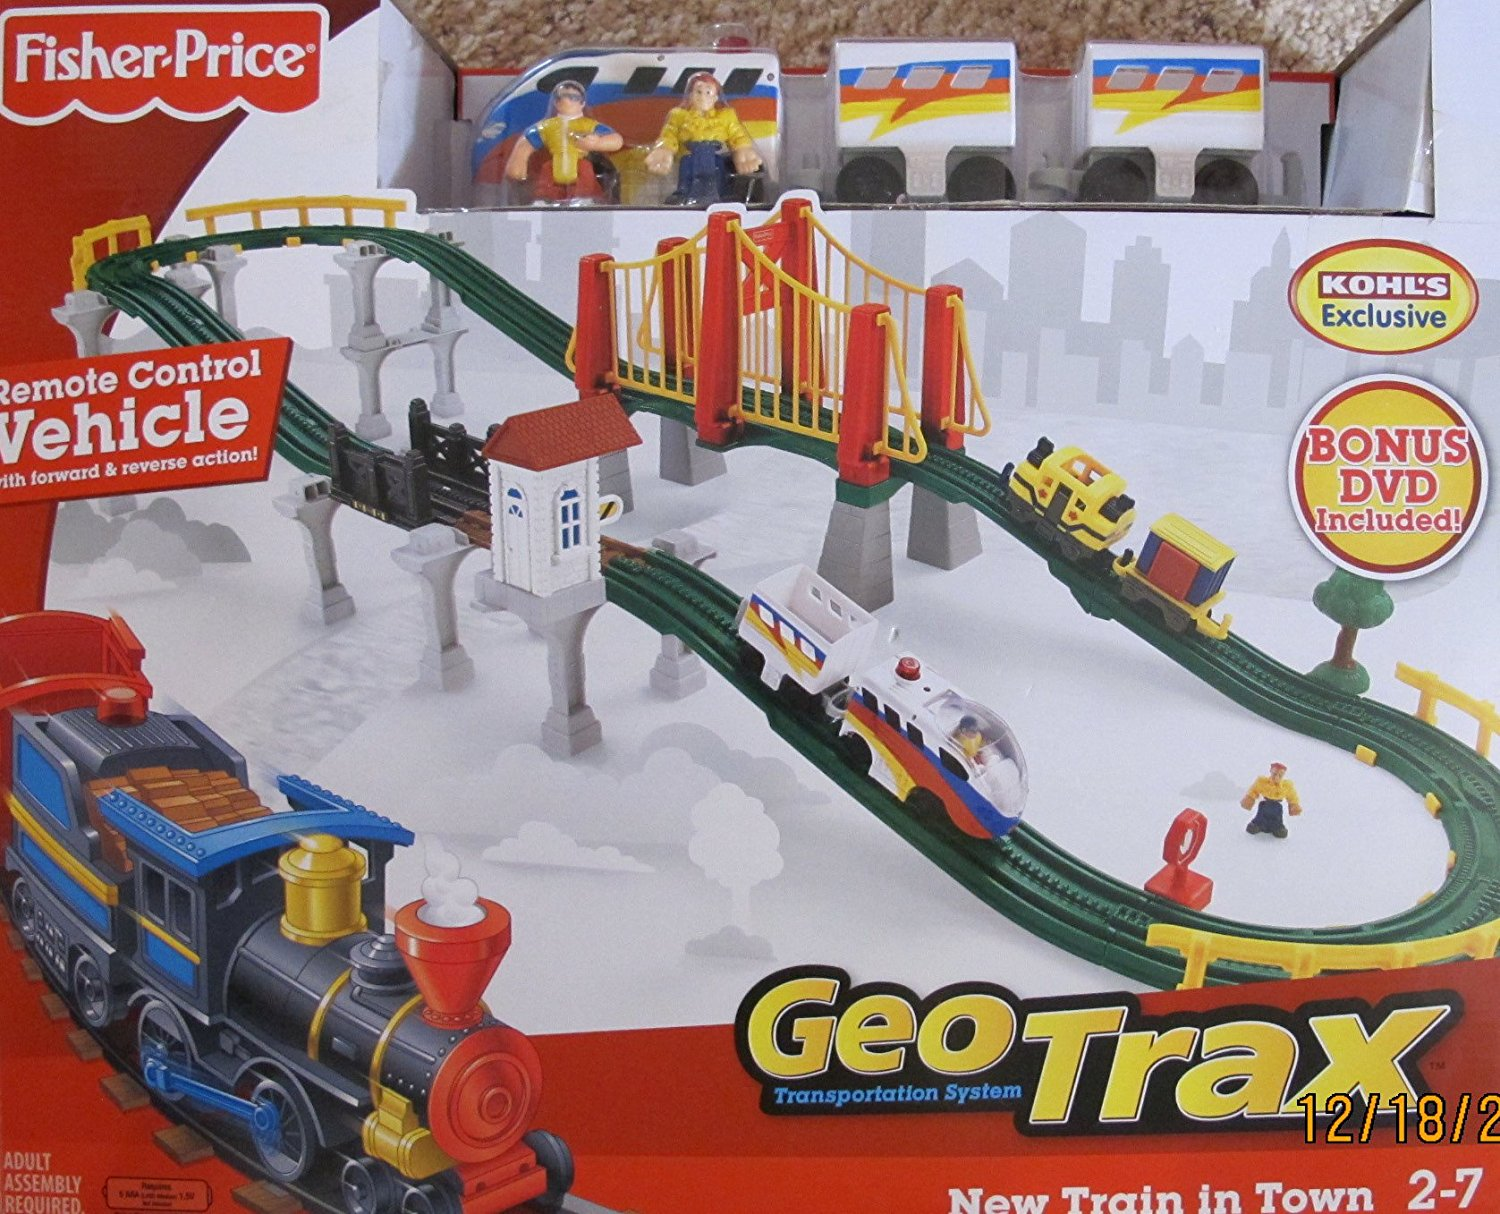 GEO TRAX GeoTrax REMOTE Control NEW TRAIN in TOWN SET w 2 TEAMS (FASTEST TEAM & CONFUSED TEAM), BRIDGES, DVD & More KOHL'S EXCLUSIVE (2009)